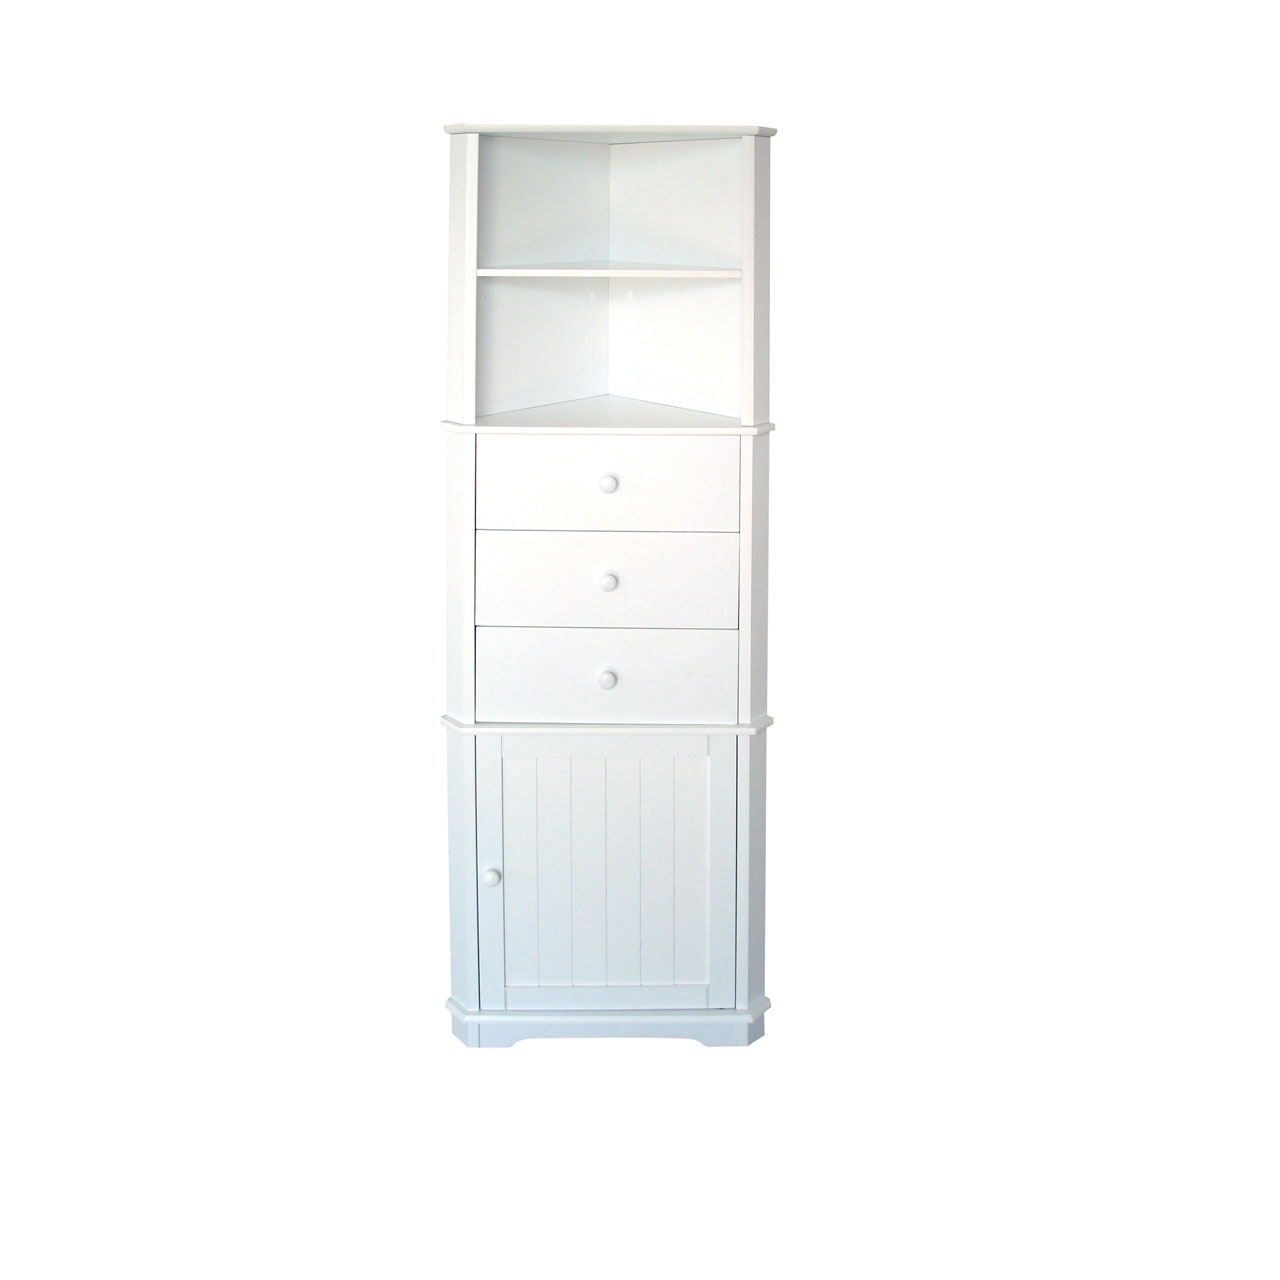 White Wood Bathroom Kitchen Corner Unit Cupboard Drawers